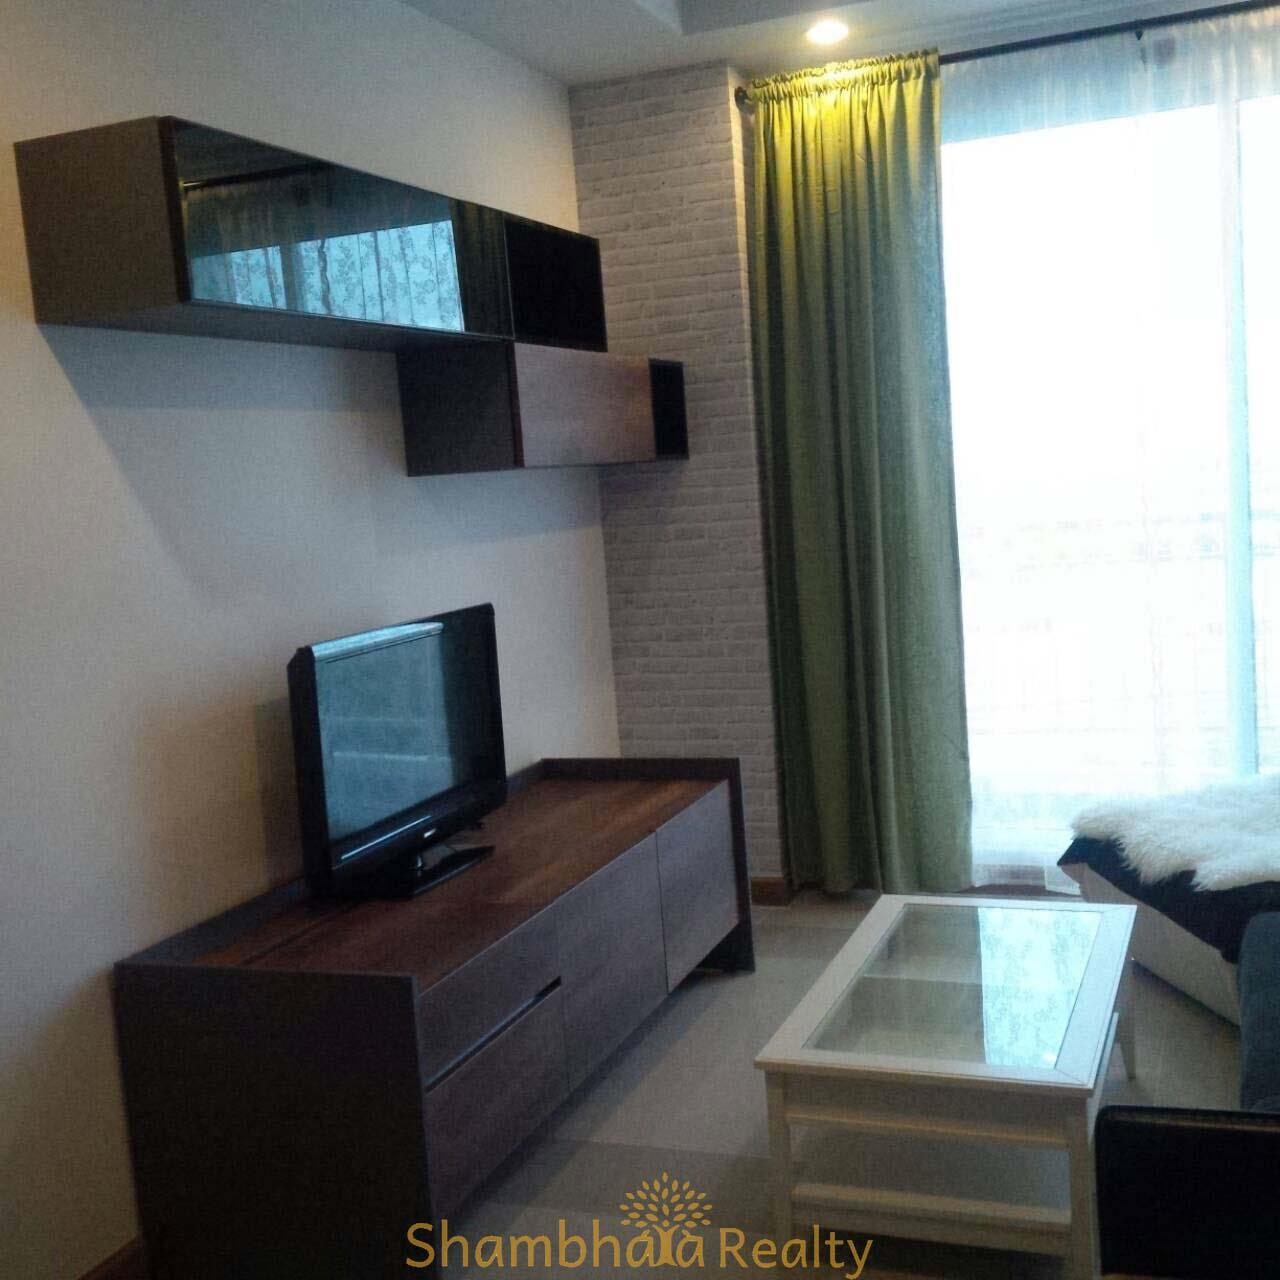 Shambhala Realty Agency's Supalai Wellington Condominium for Rent in Thiam Ruam Mit 27 Rd, Huai Khwang 3